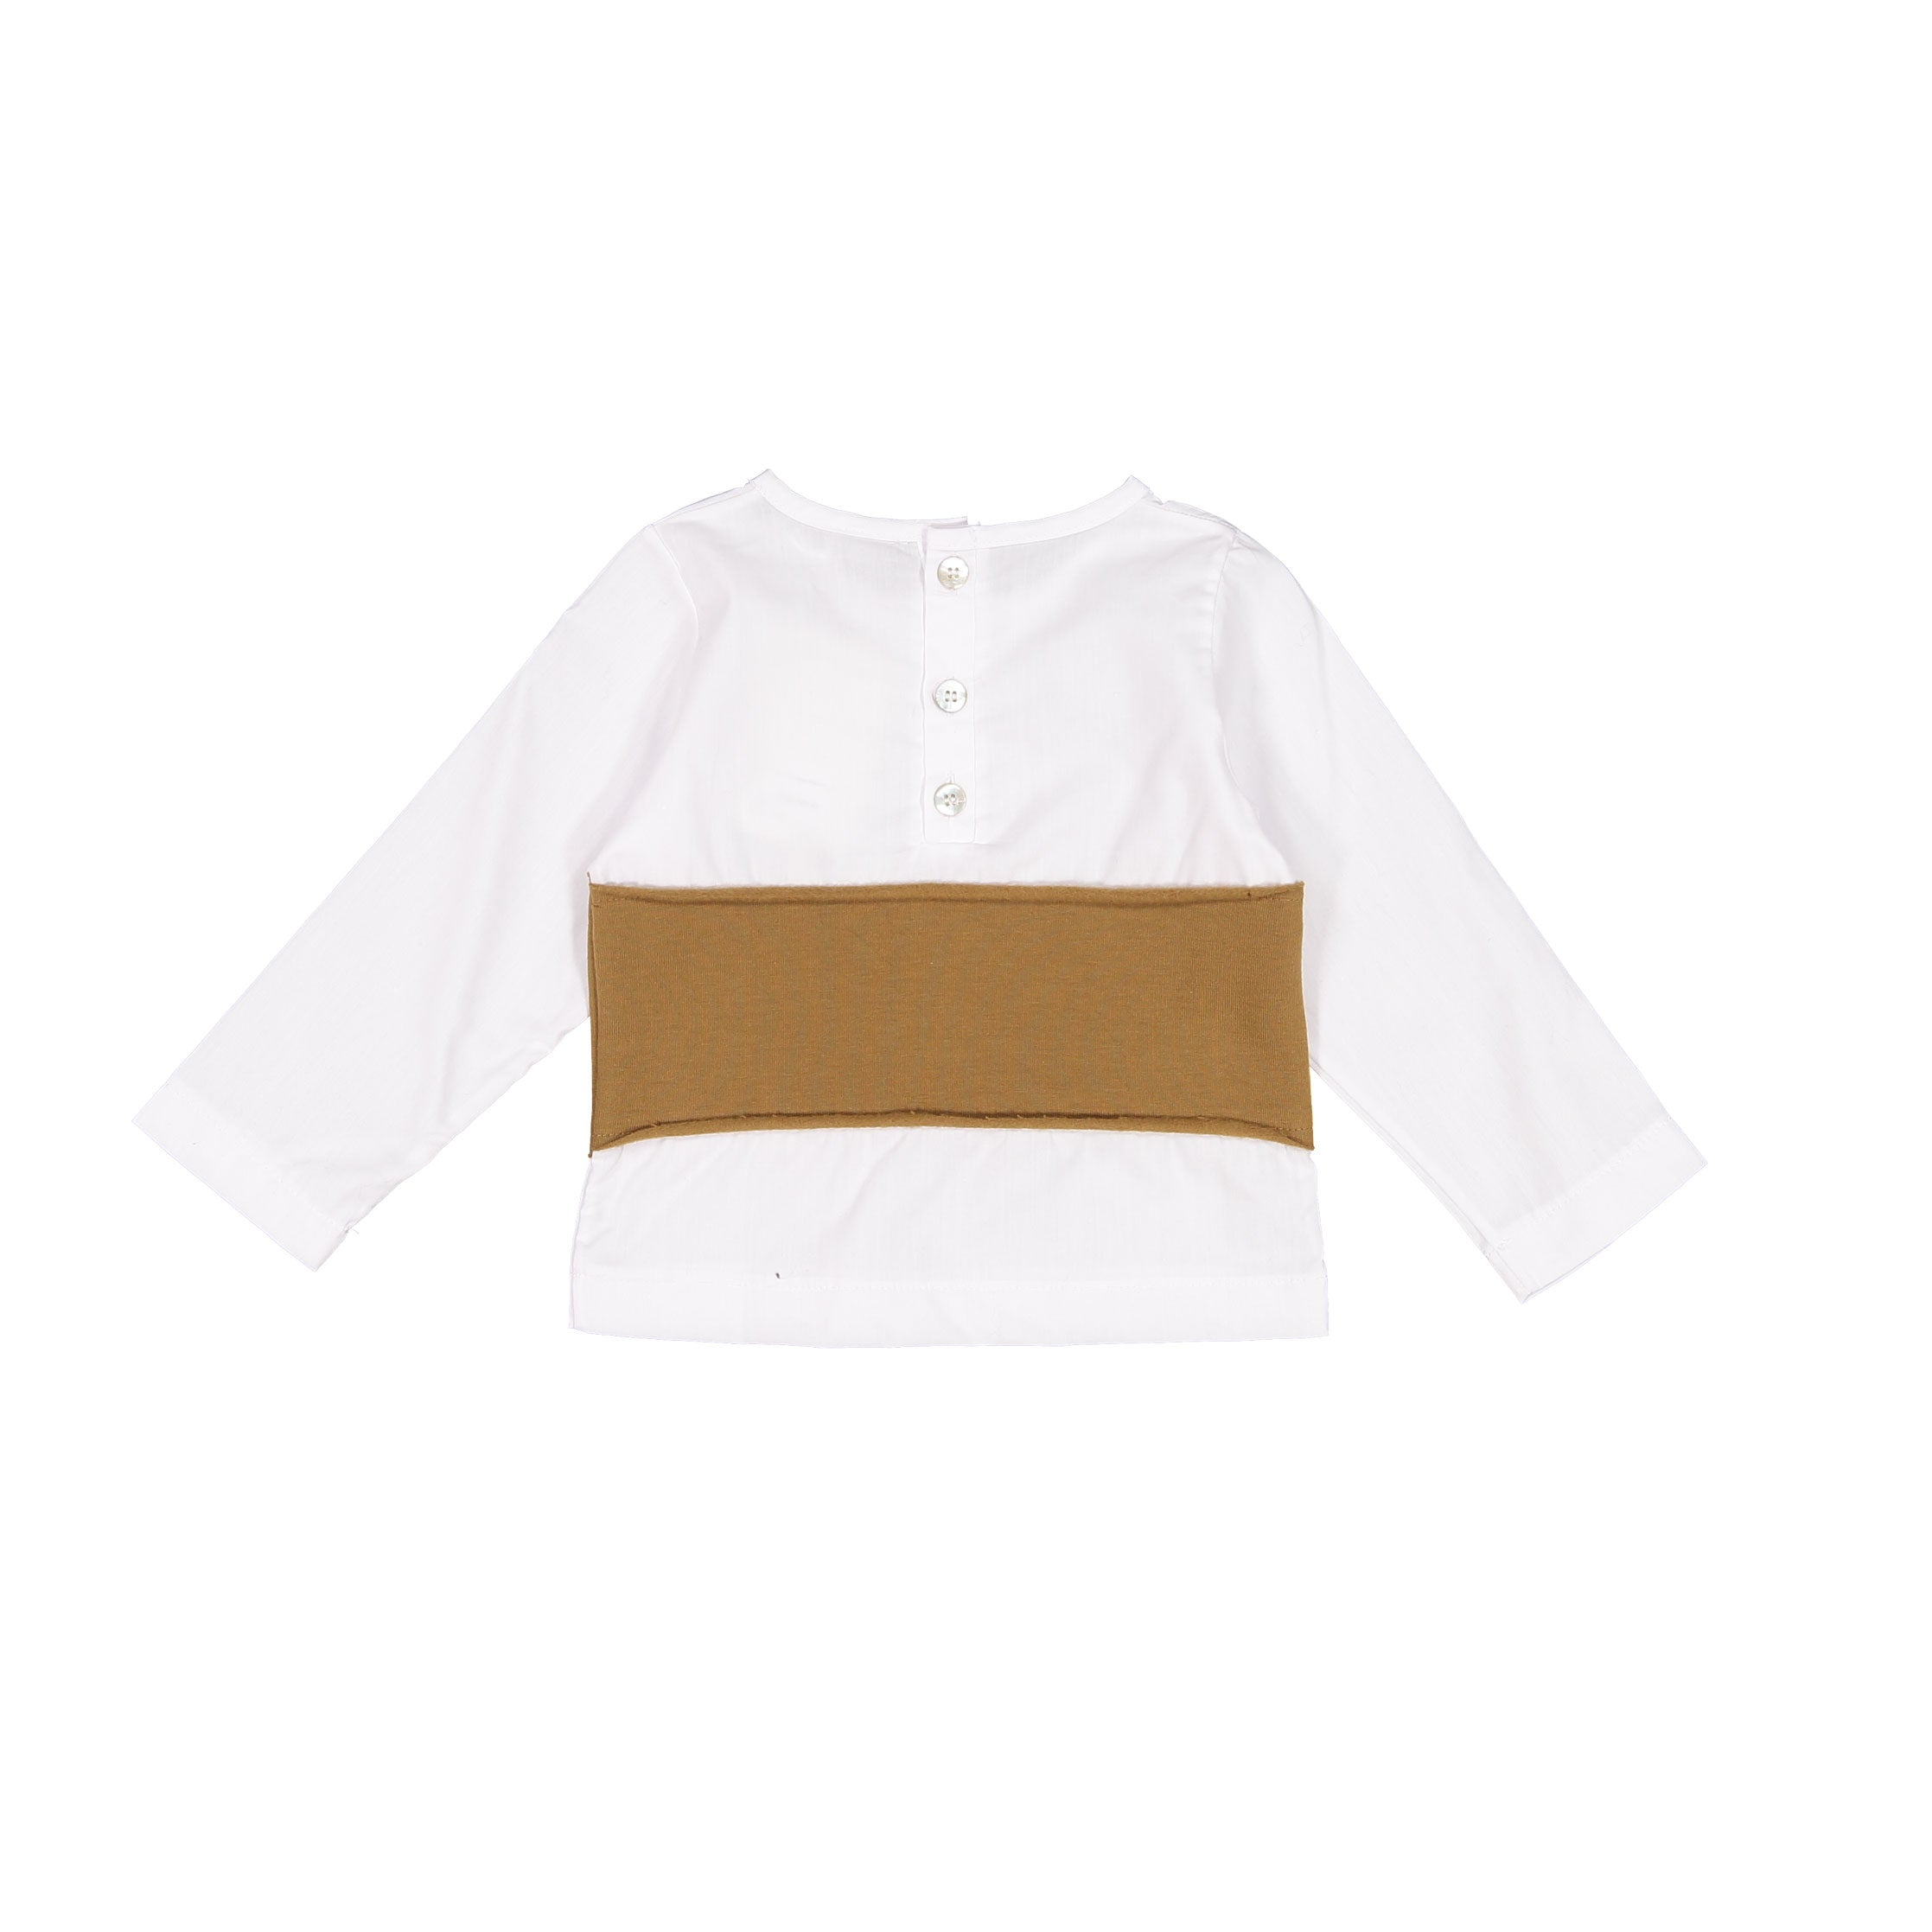 Minimu Milk/Rust Striped Shirt - Ladida